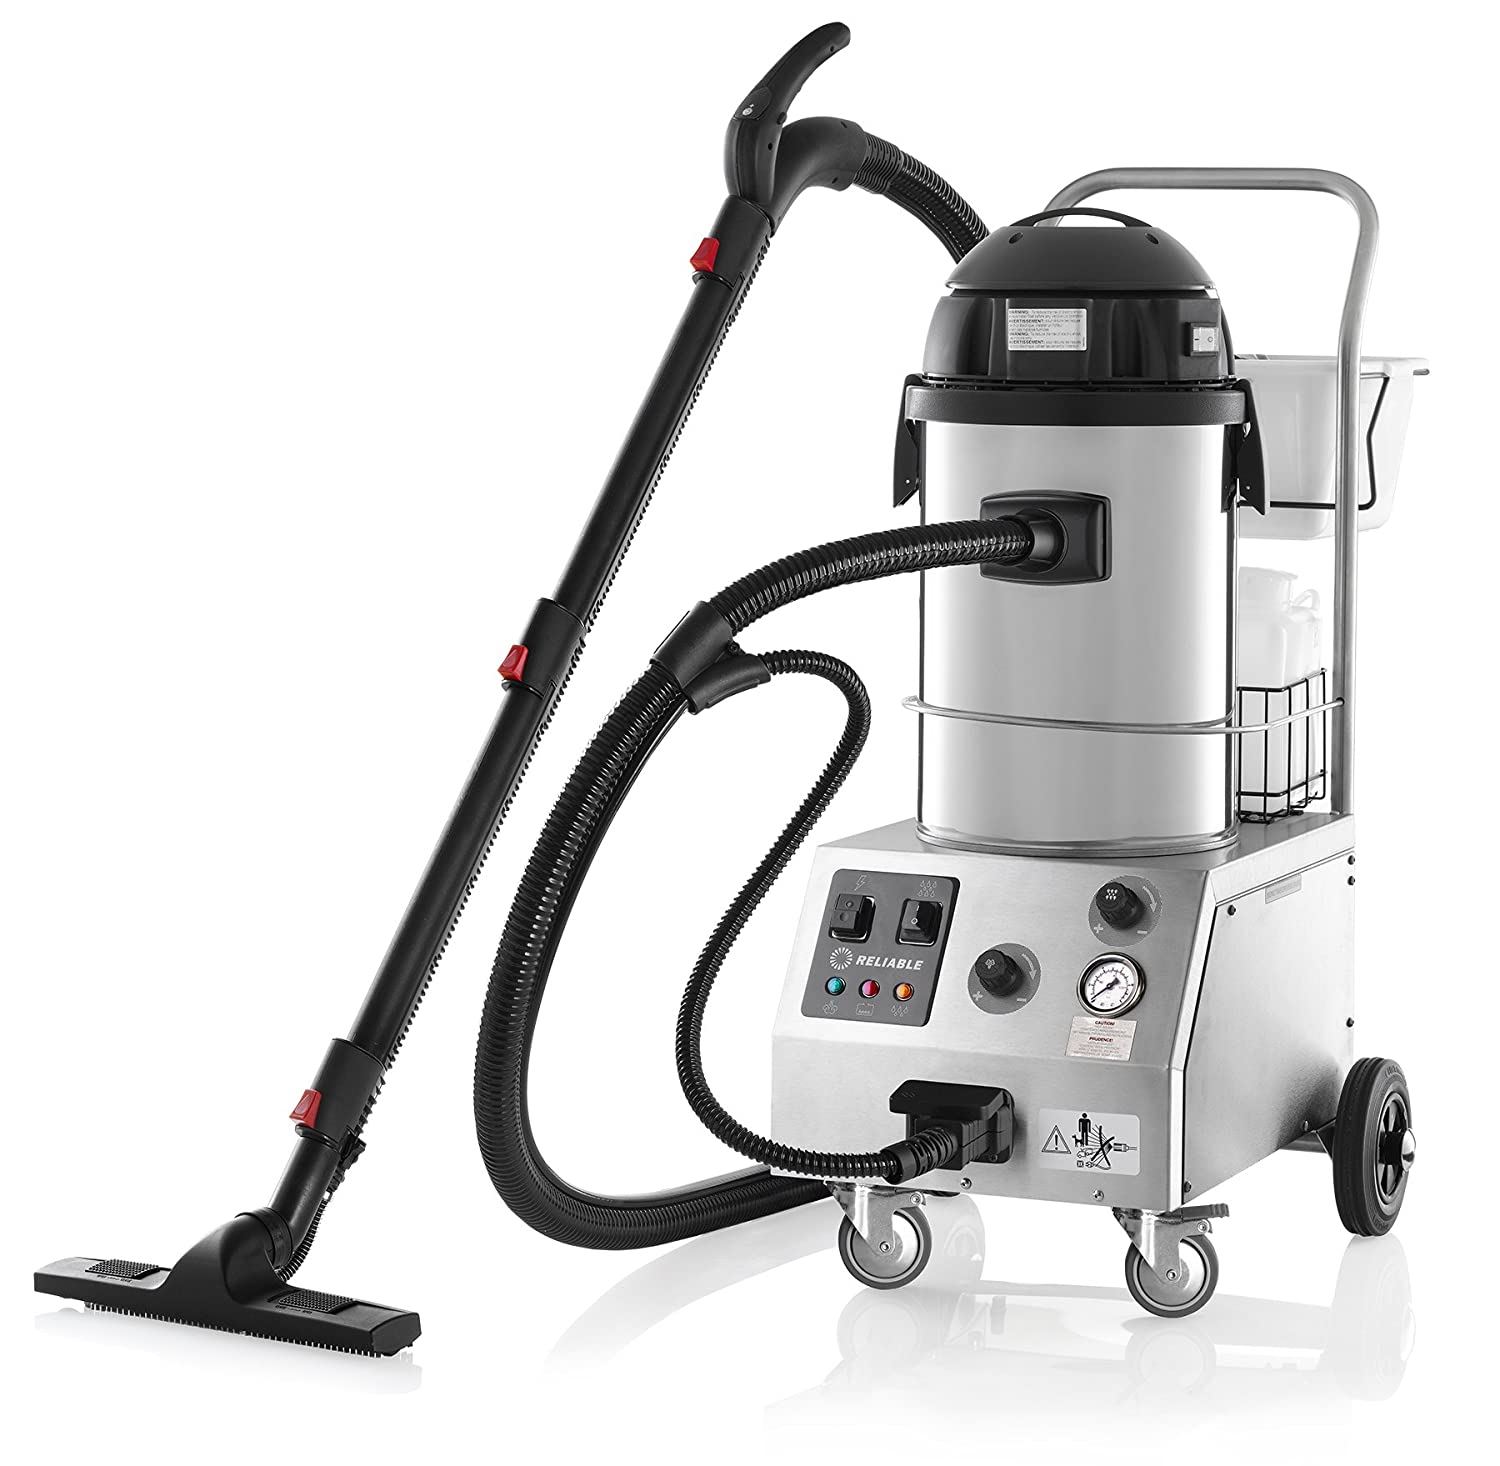 Marvelous Amazon.com : Reliable Tandem Pro 2000CV Commercial Steam U0026 Vacuum Cleaner :  Home Pest Control Products : Garden U0026 Outdoor